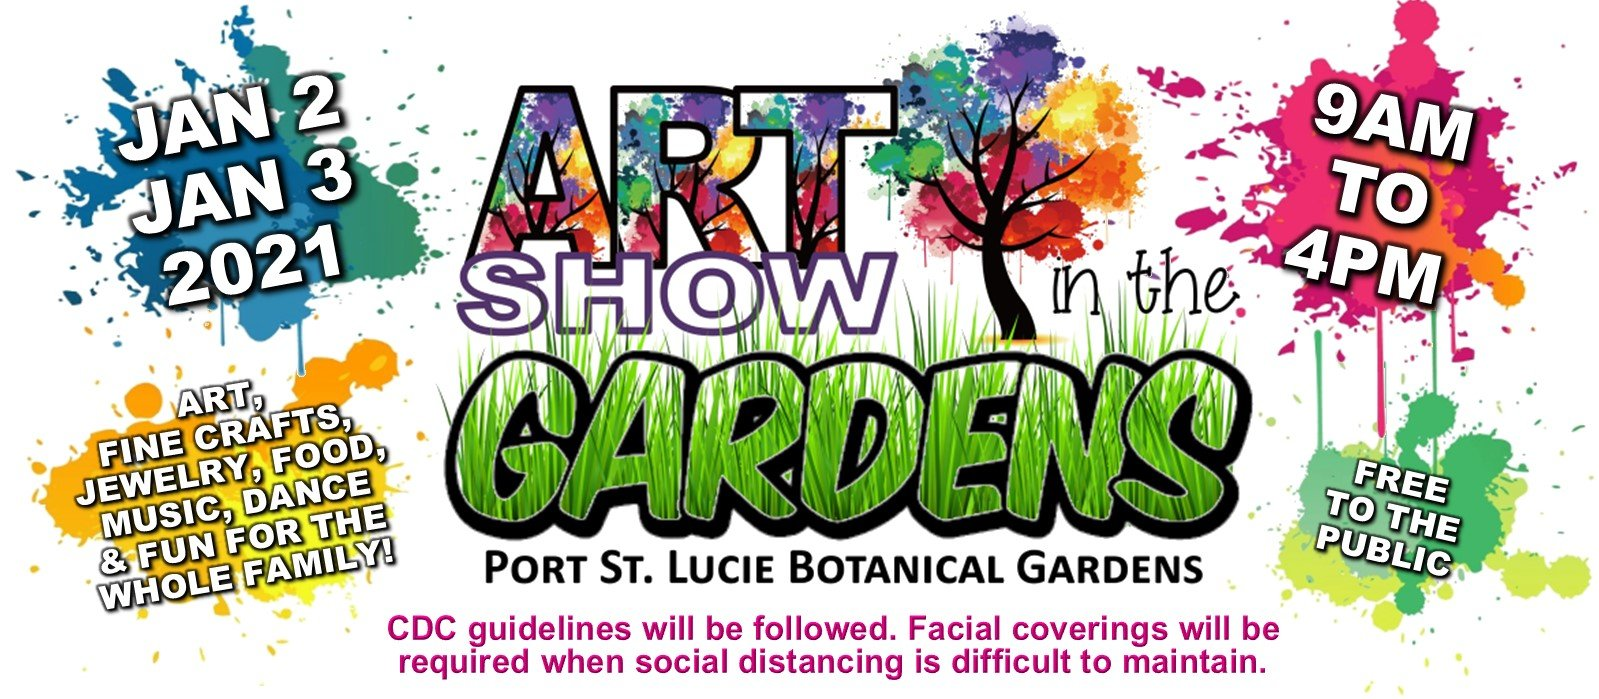 Graphic representing the 2nd Annual Art Showin the Gardens at the Port st. Lucie Botanical Gardens.